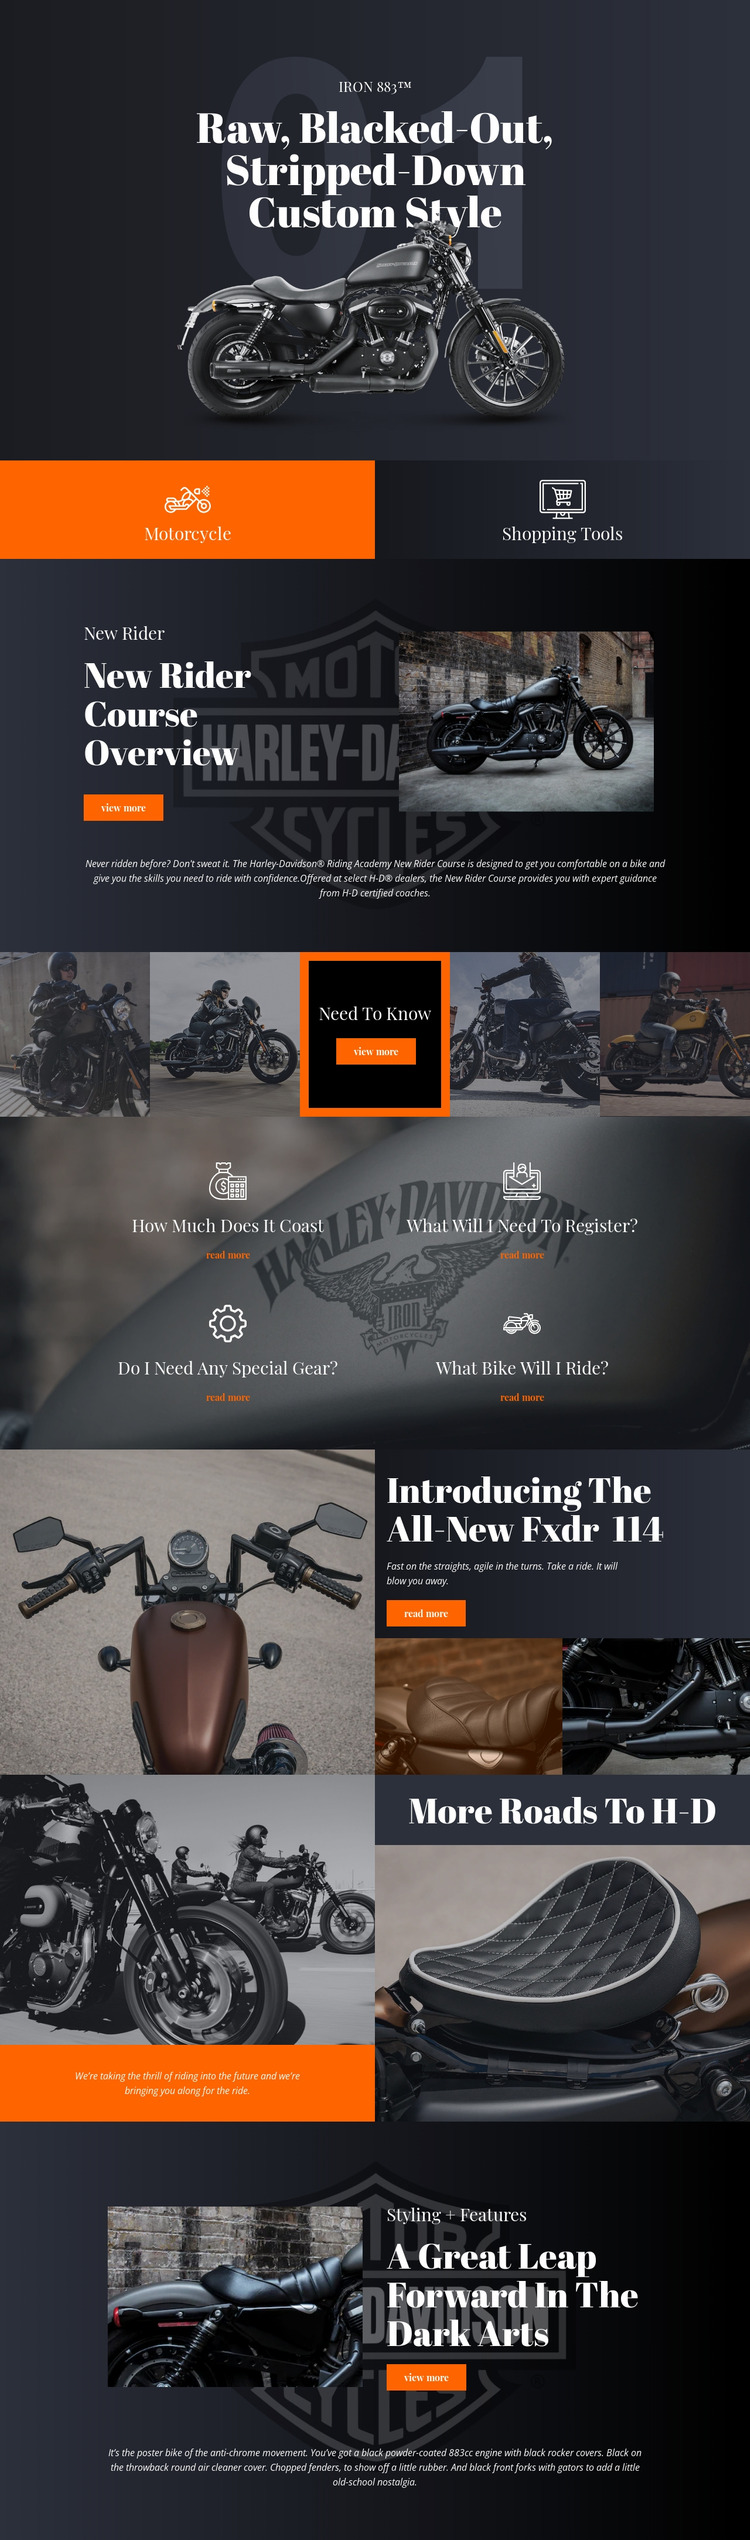 Harley Davidson Html Website Builder